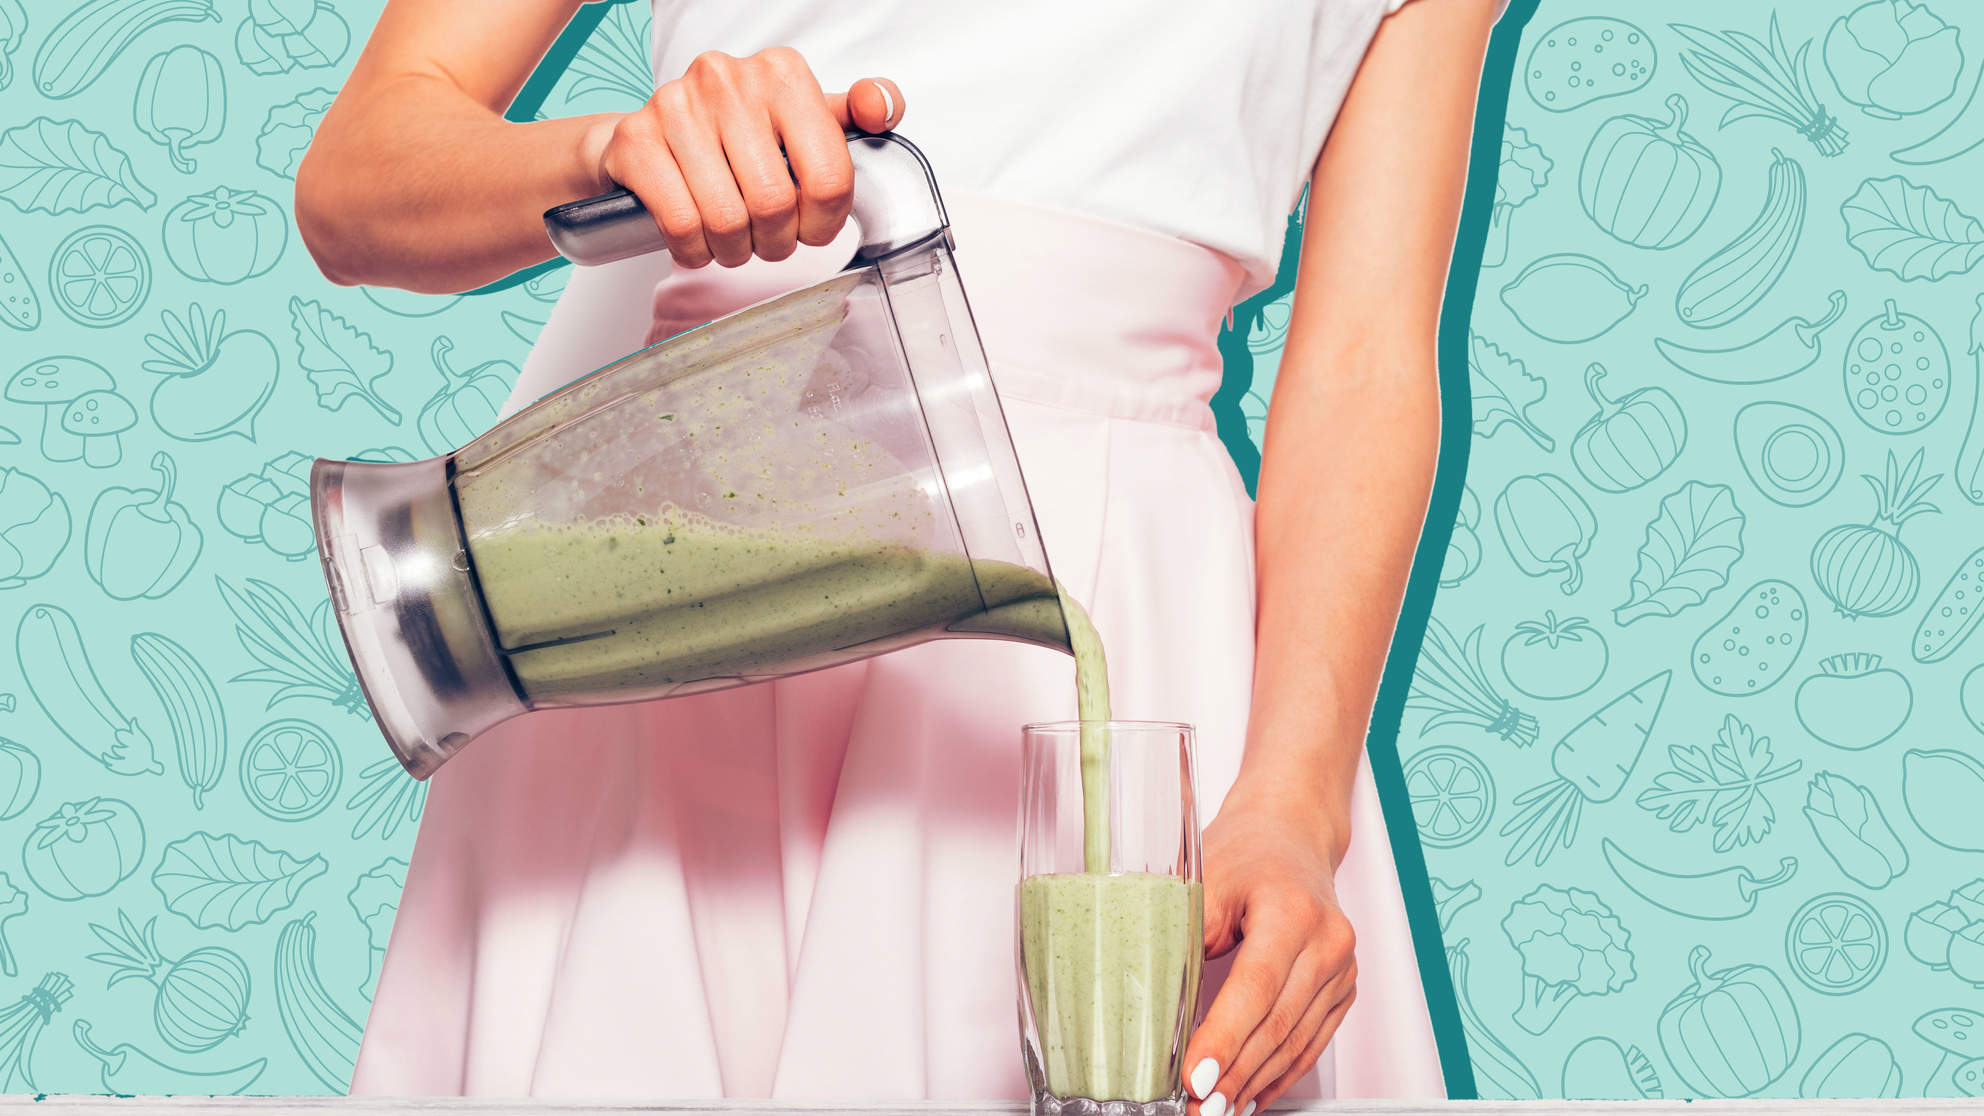 This $27 Blender Is my Holy-Grail Kitchen Gadget For Healthy Eating